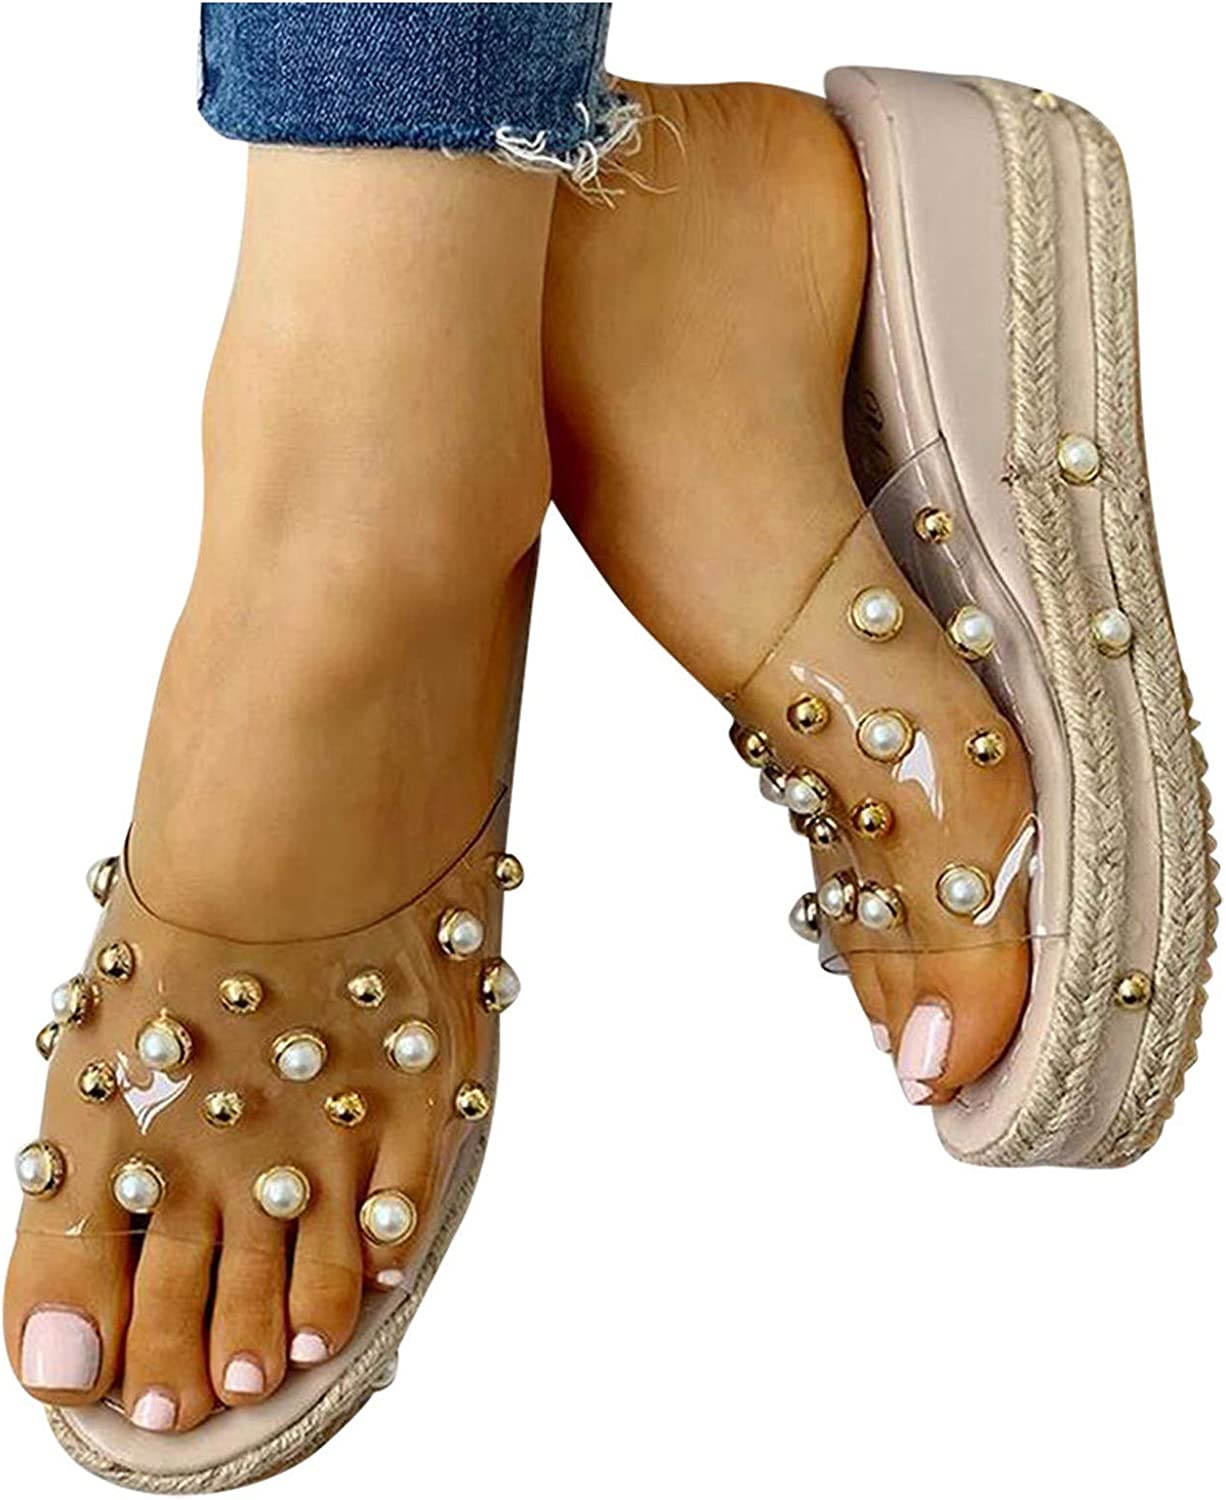 Aniwood Sandals for Women Casual Summer Slip On Open Toe Pearl Wedge Roman Shoes Casual Beach Gladiator Sandals